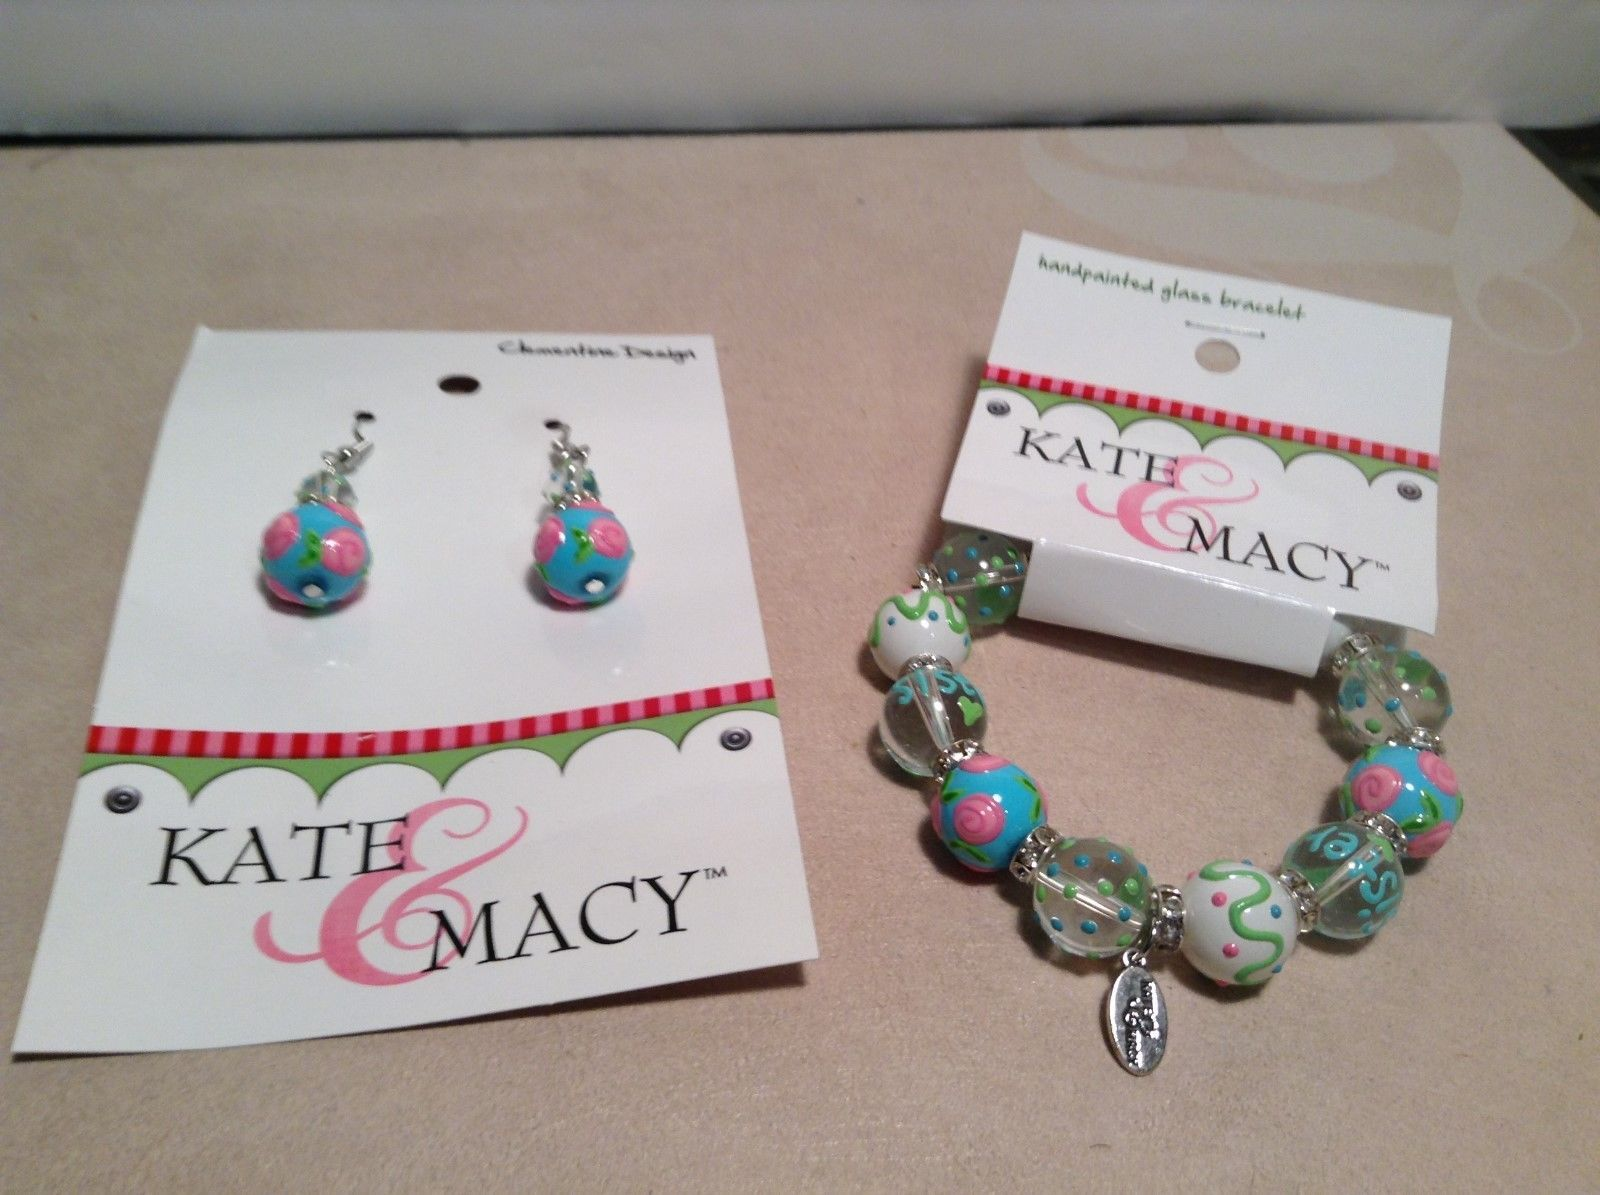 NEW Kate & Macy Hand Painted Glass Bracelet/Earring Sisters Forever Set